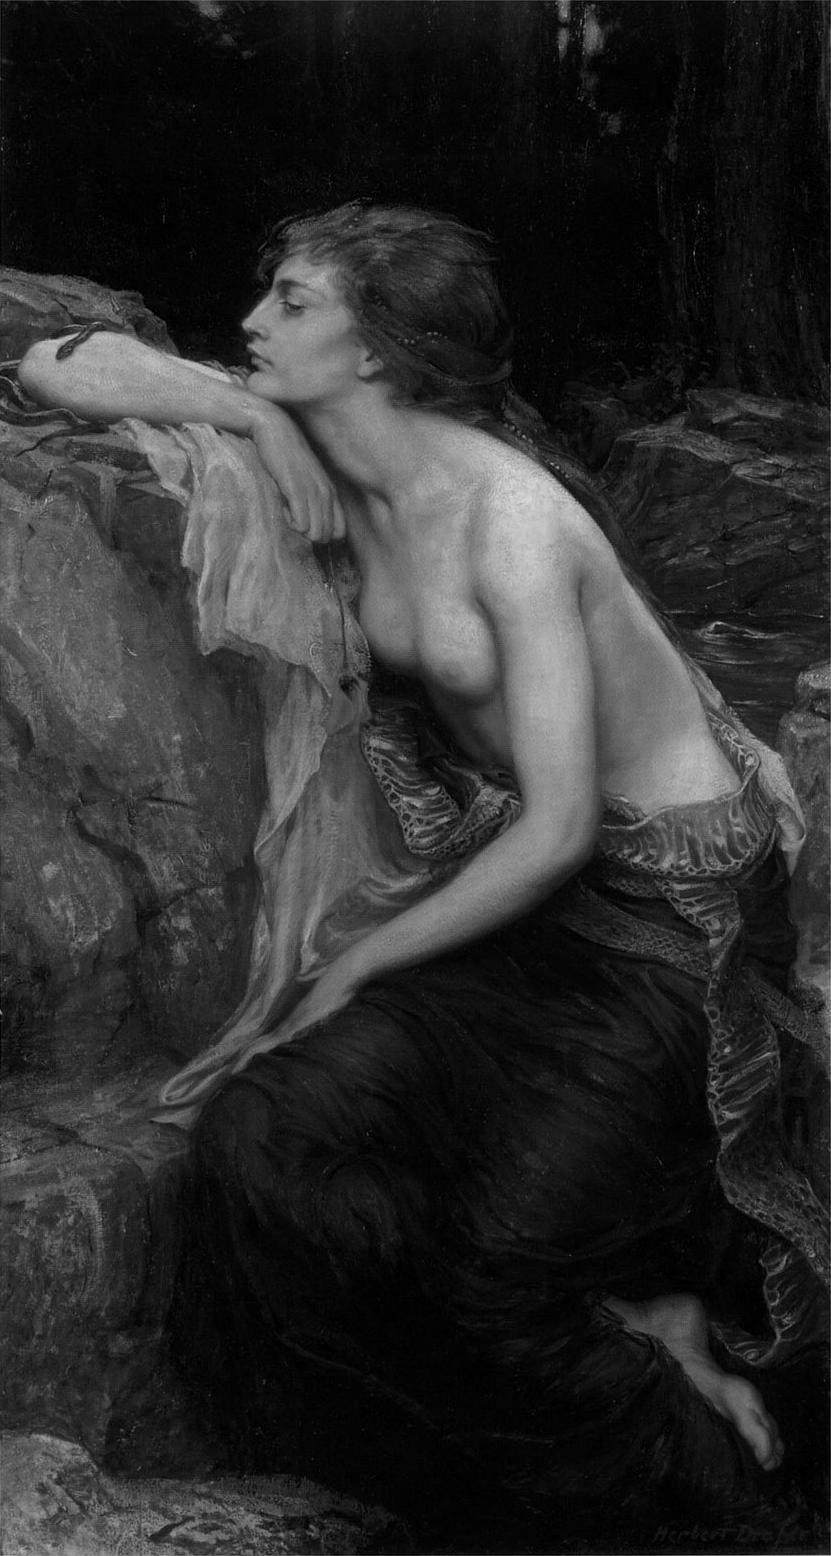 "chelsja: The Lamia: In this 1909 painting by Herbert James Draper, Lamia has human legs and a snakeskin around her waist. There is also a small snake on her right forearm. ""In ancient Greek mythology, Lamia was a beautiful queen of Libya who became a child-eating daemon. Aristophanes claimed her name derived from the Greek word for gullet, referring to her habit of devouring children."""